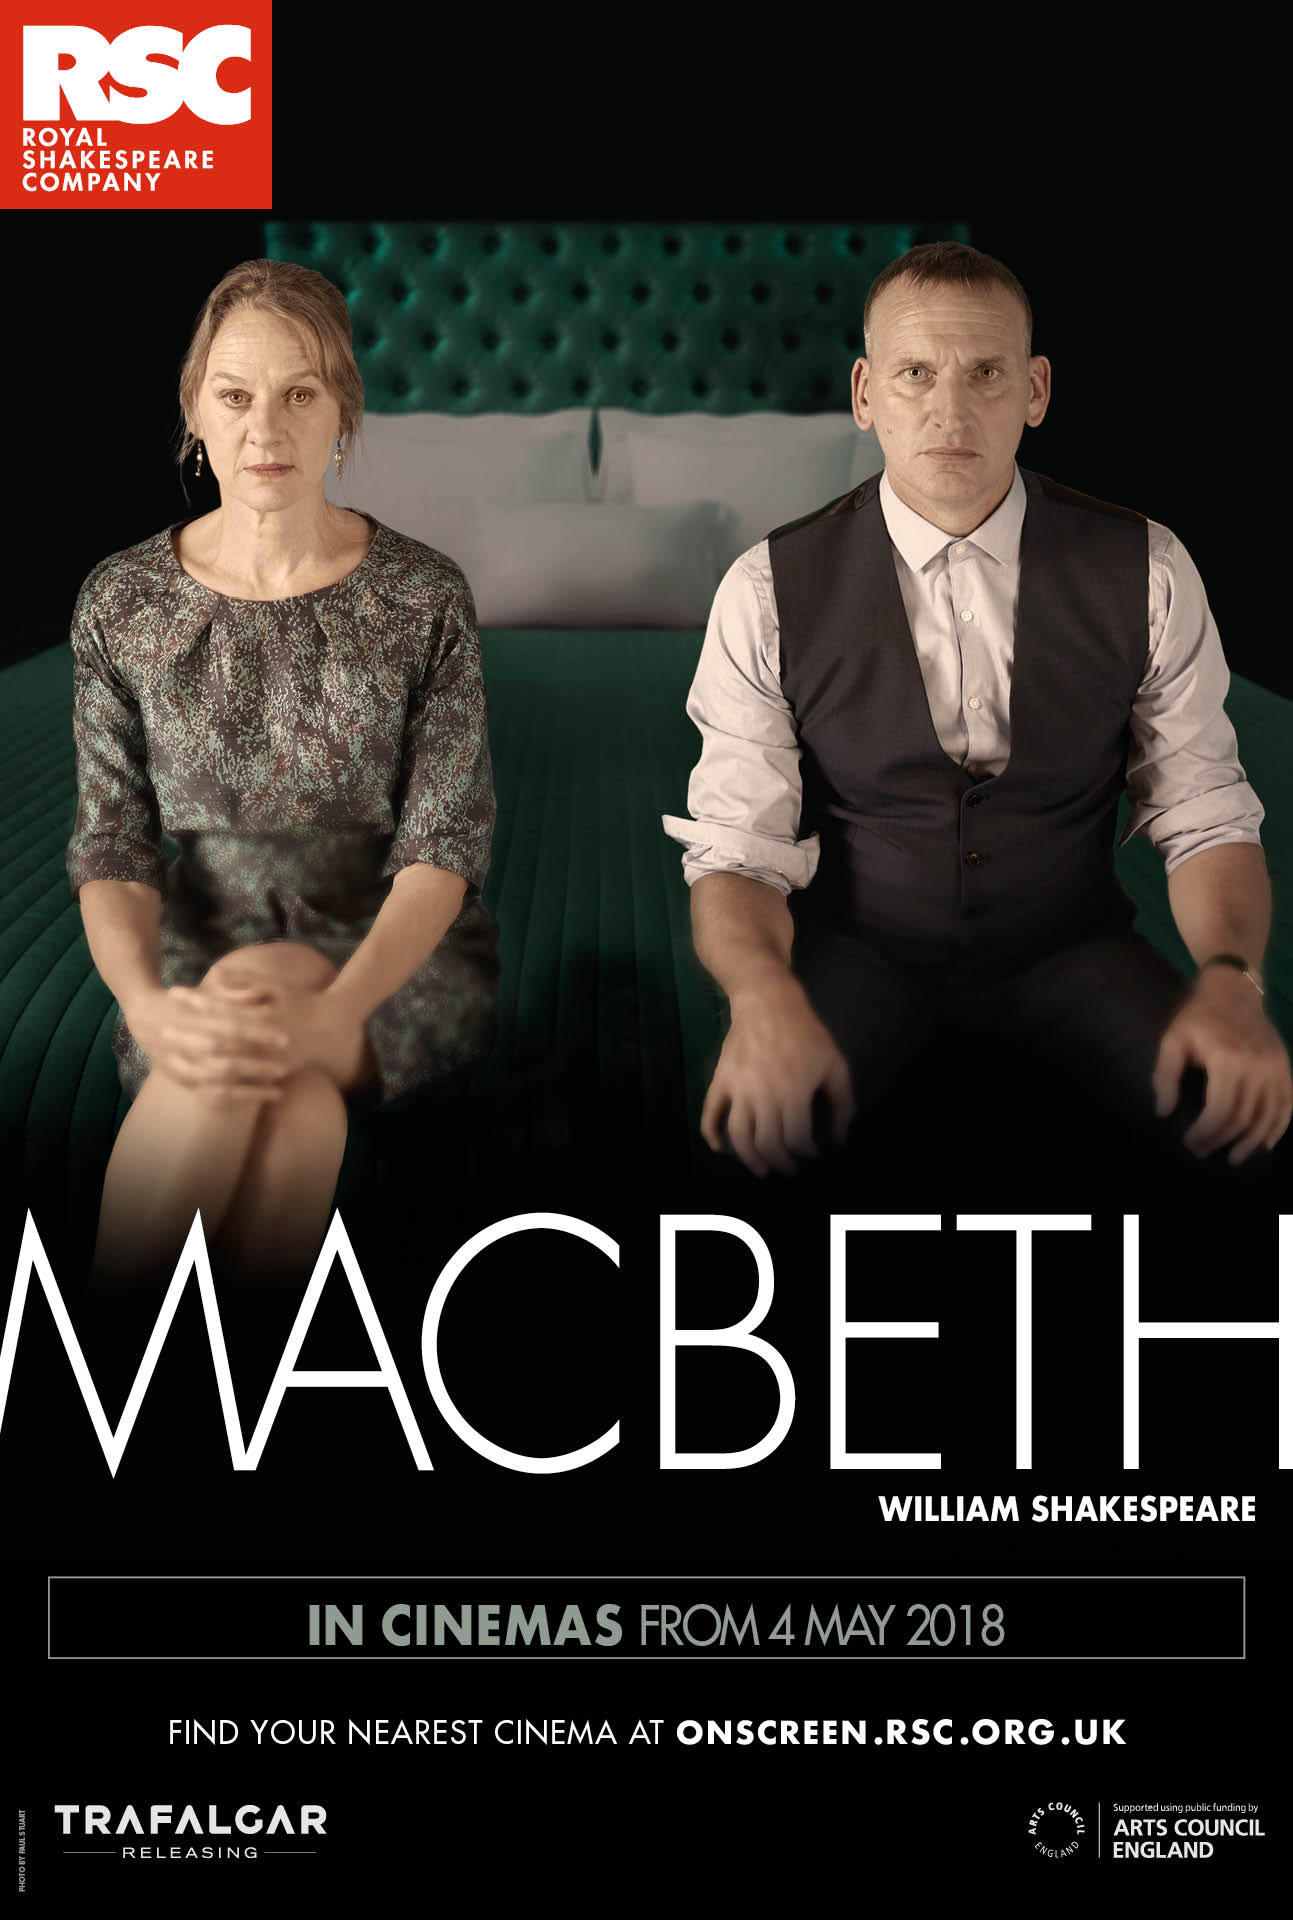 Royal Shakespeare Company: Macbeth poster art